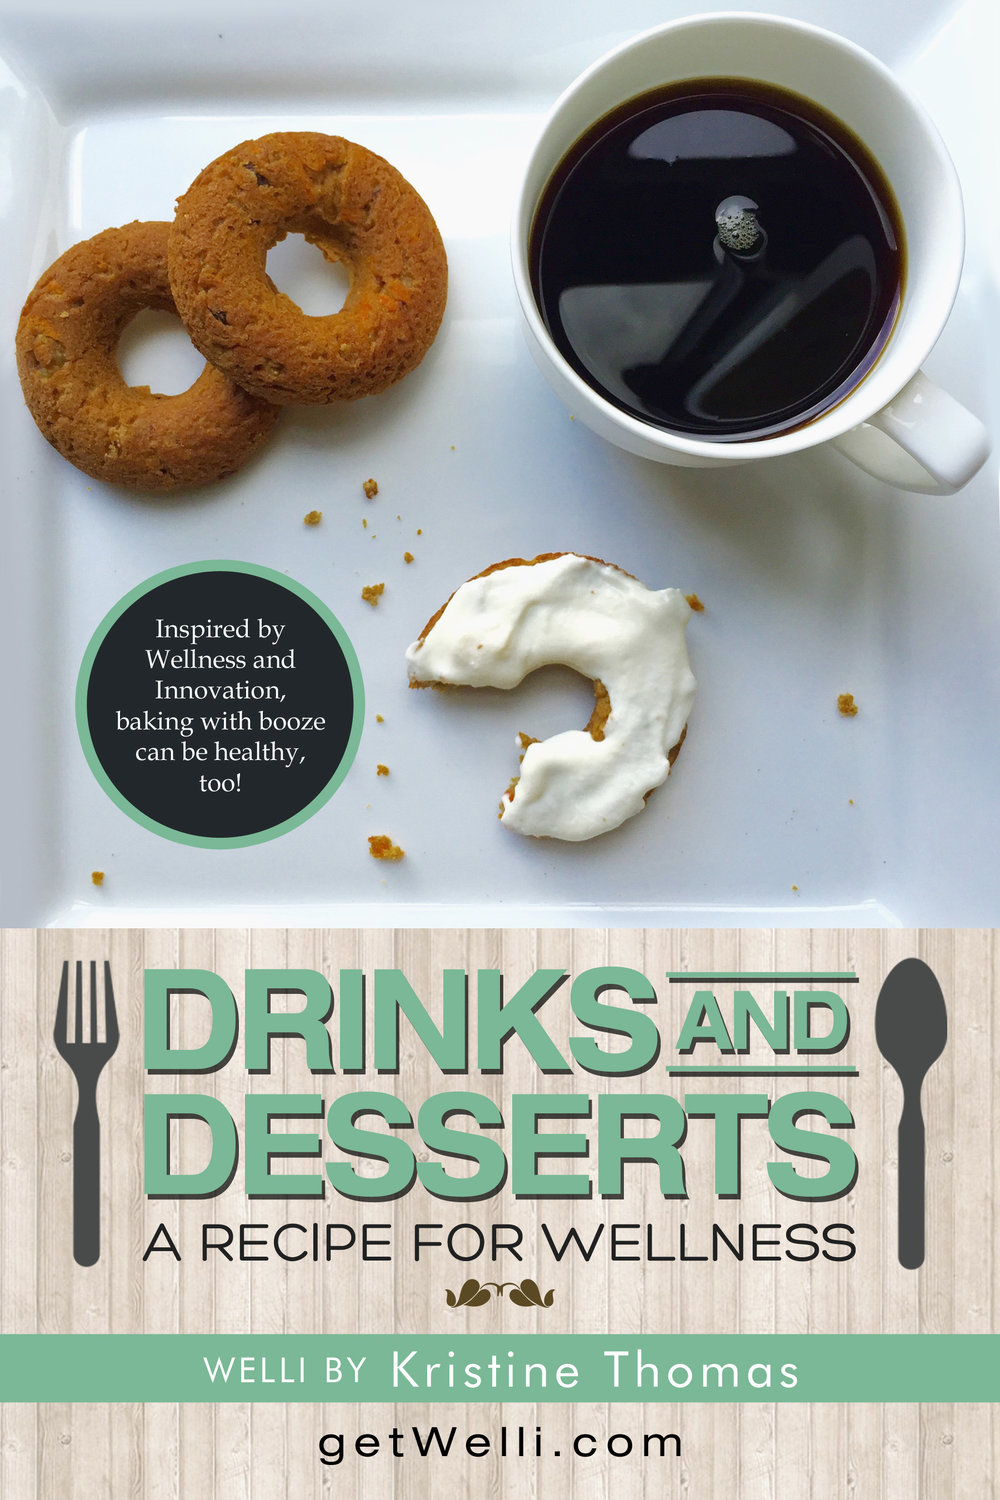 Drinks & Desserts - A Recipe for Wellness - This cookbook was written to inspire and show you that whether your vegan, paleo, gluten free or just care about your health, there's a dessert for you and your healthy lifestyle! Inspired by Wellness, Innovation... and a little wine and spirits, too, you're certain to find a recipe you'll love!